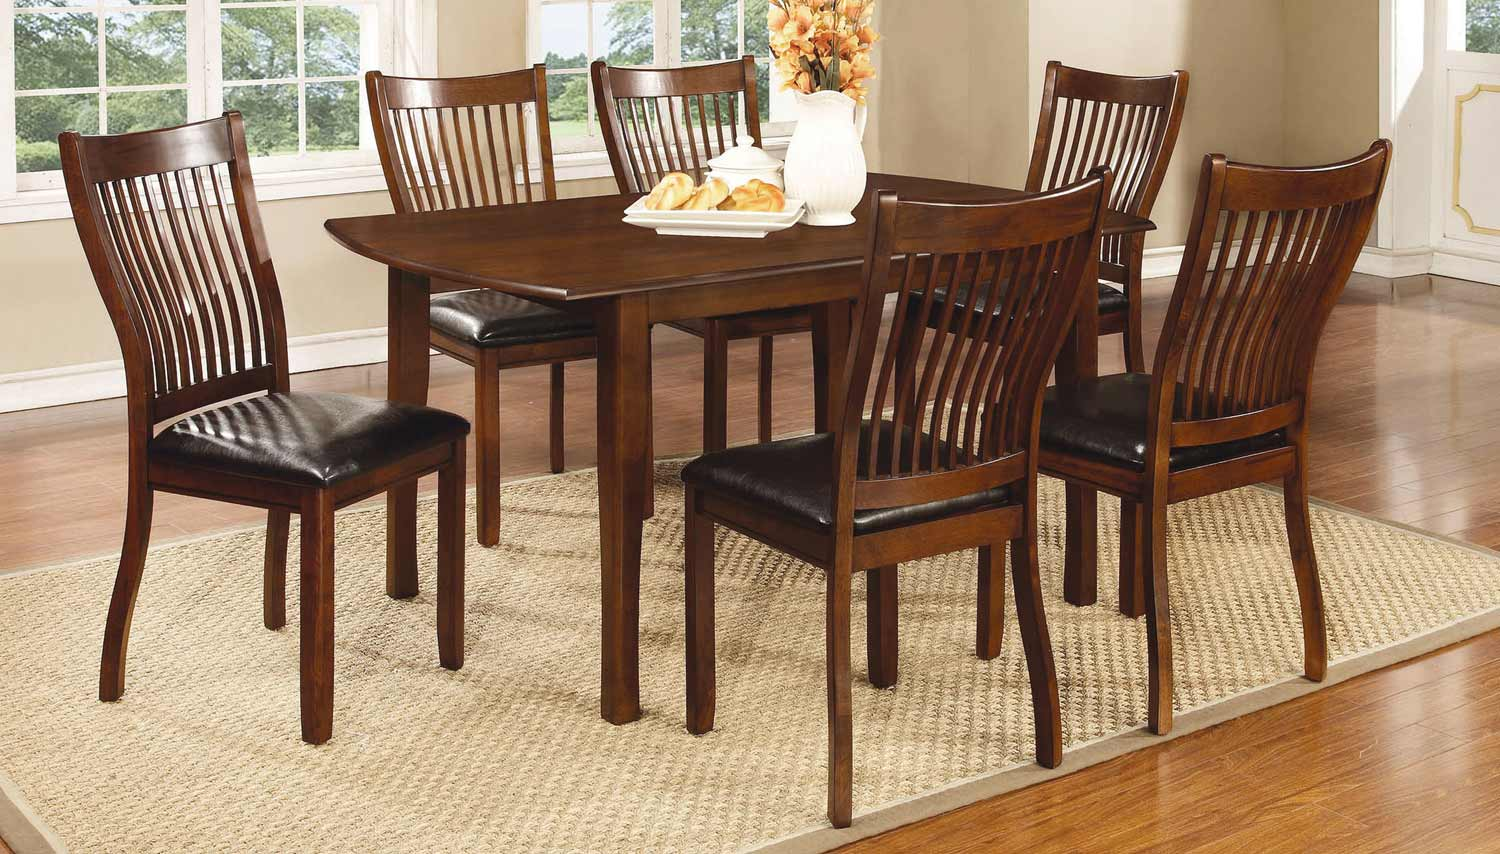 Coaster Sierra Dining Collection - Cherry Brown/Black Leatherette